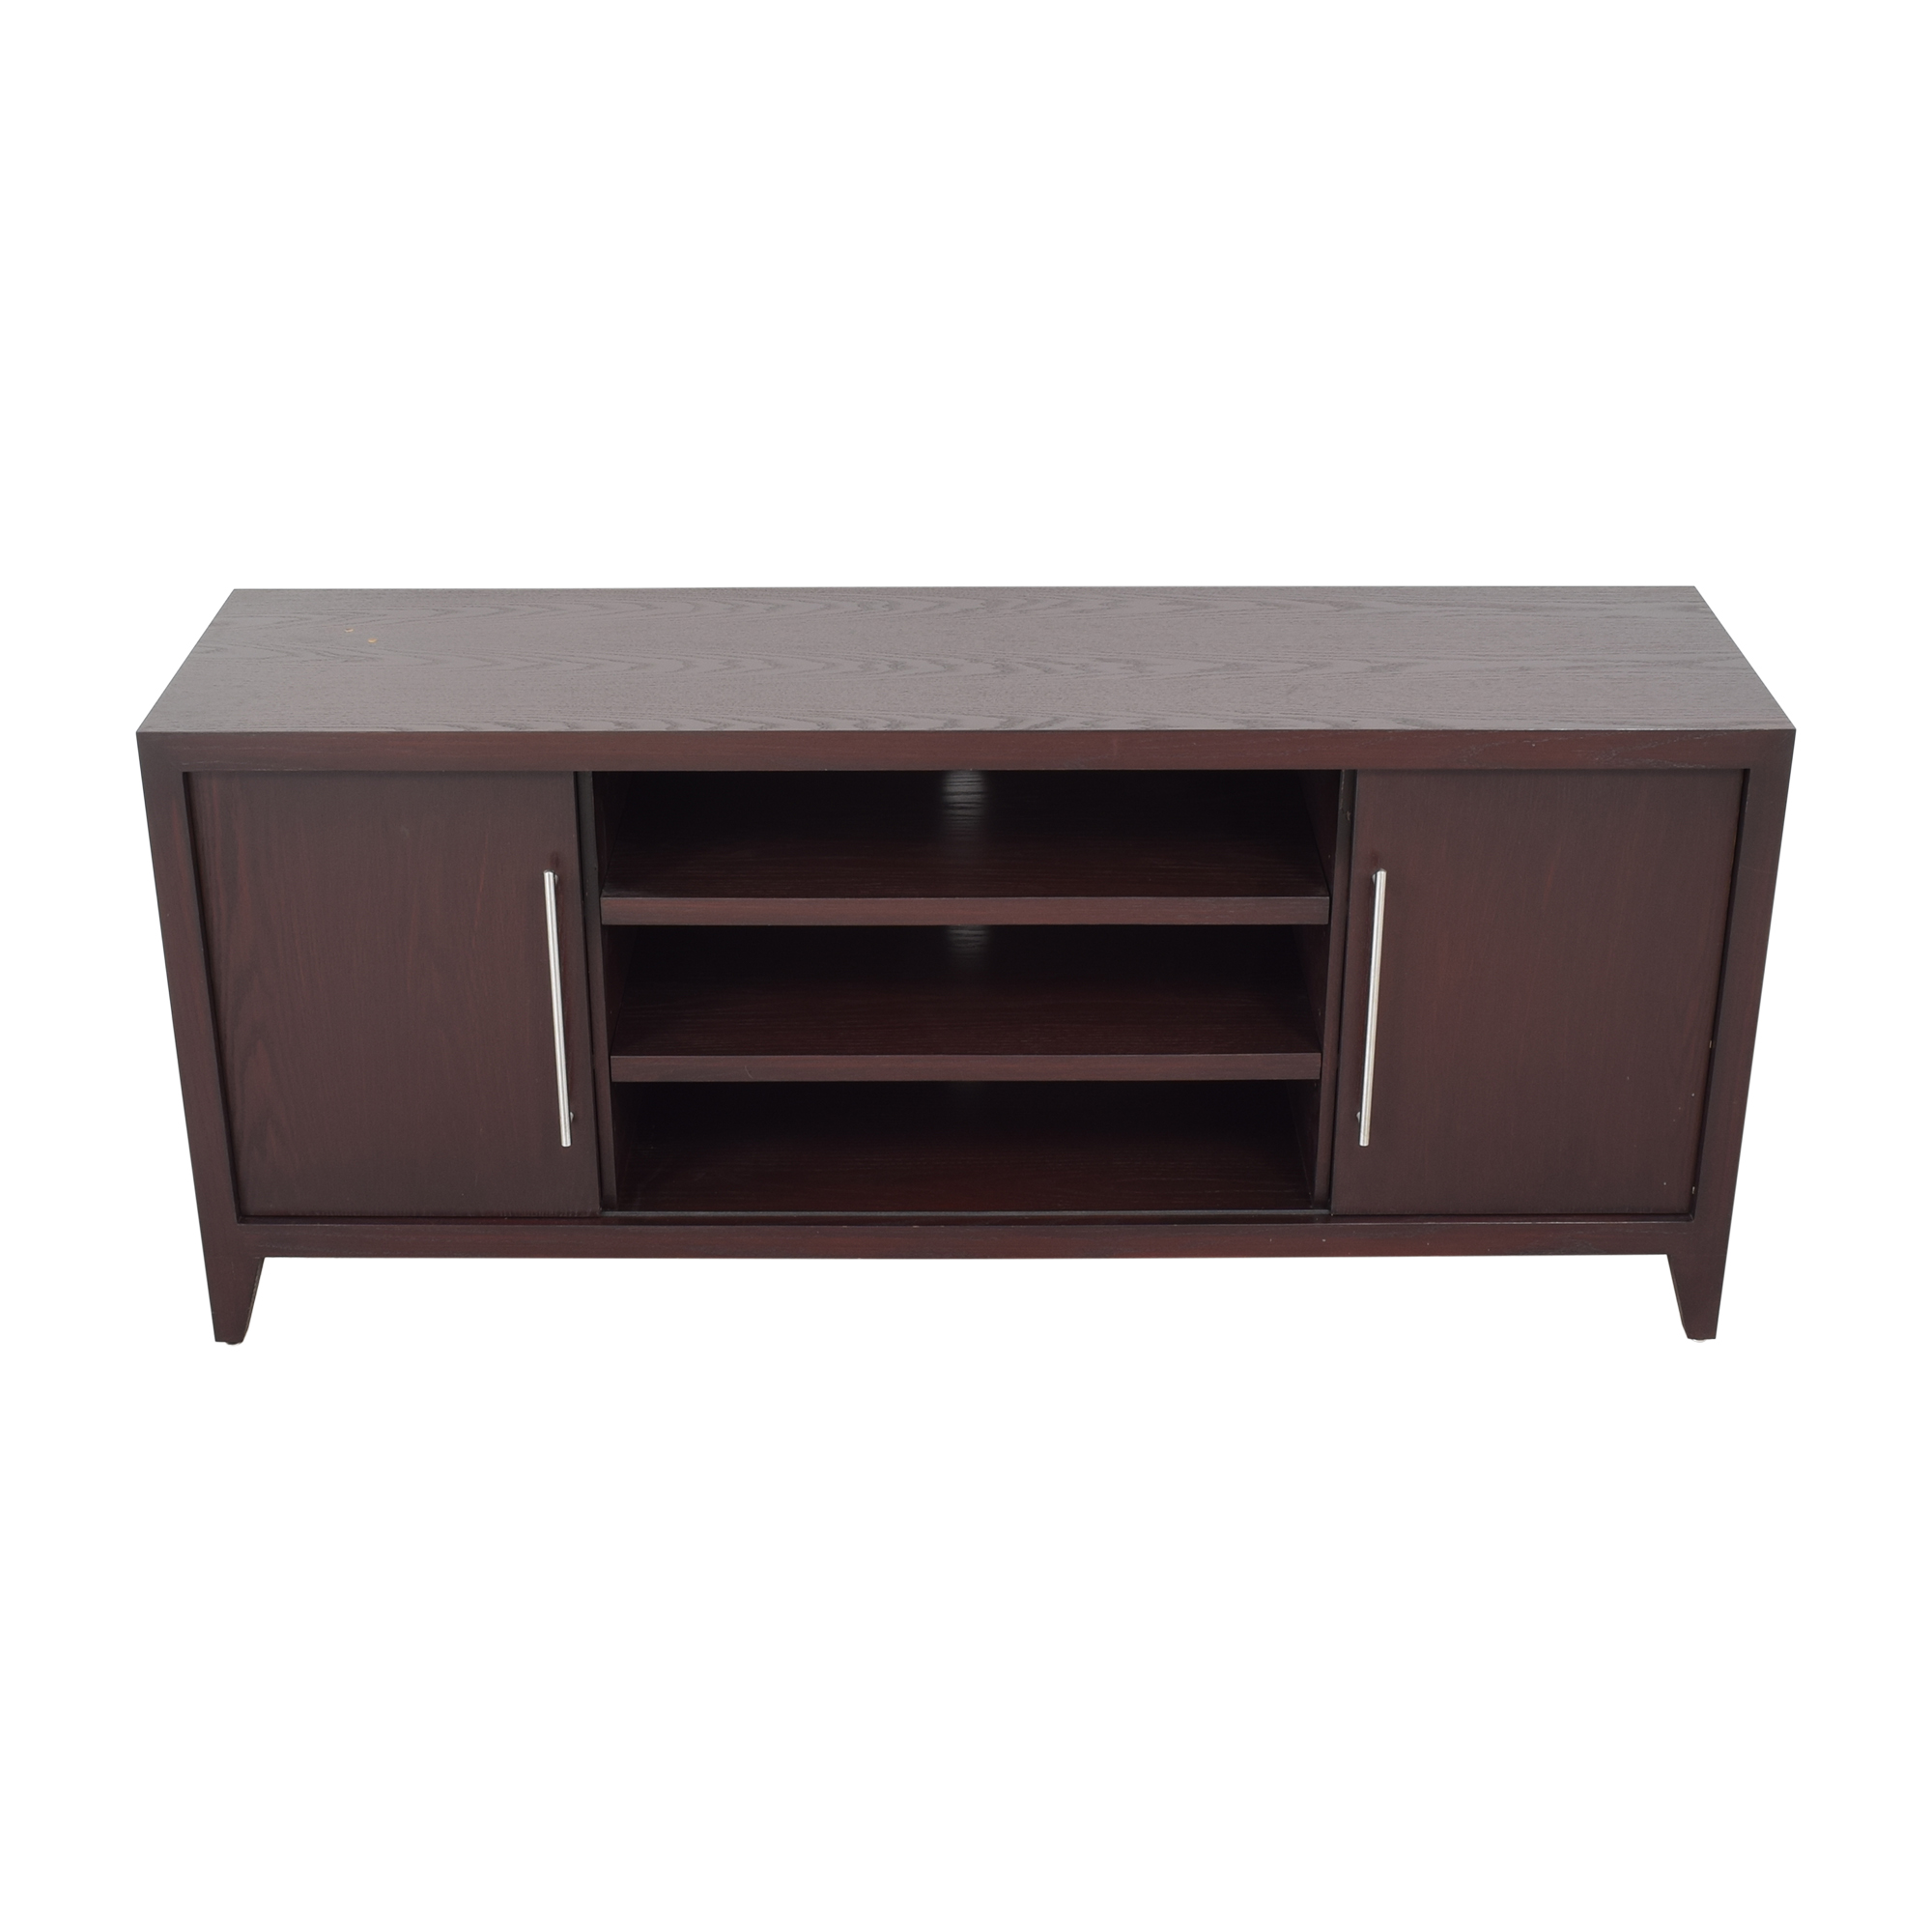 Media Cabinet TV Console second hand